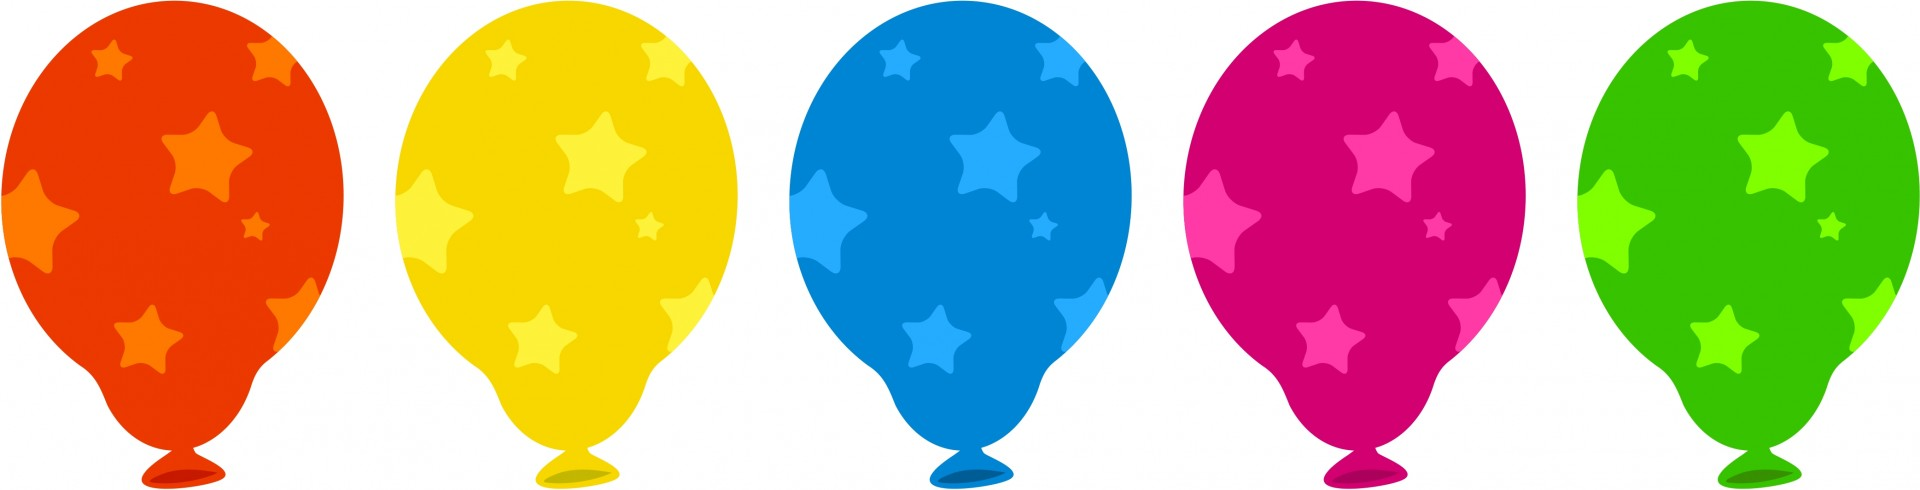 Other clipart colourful balloon. Balloons clip art free